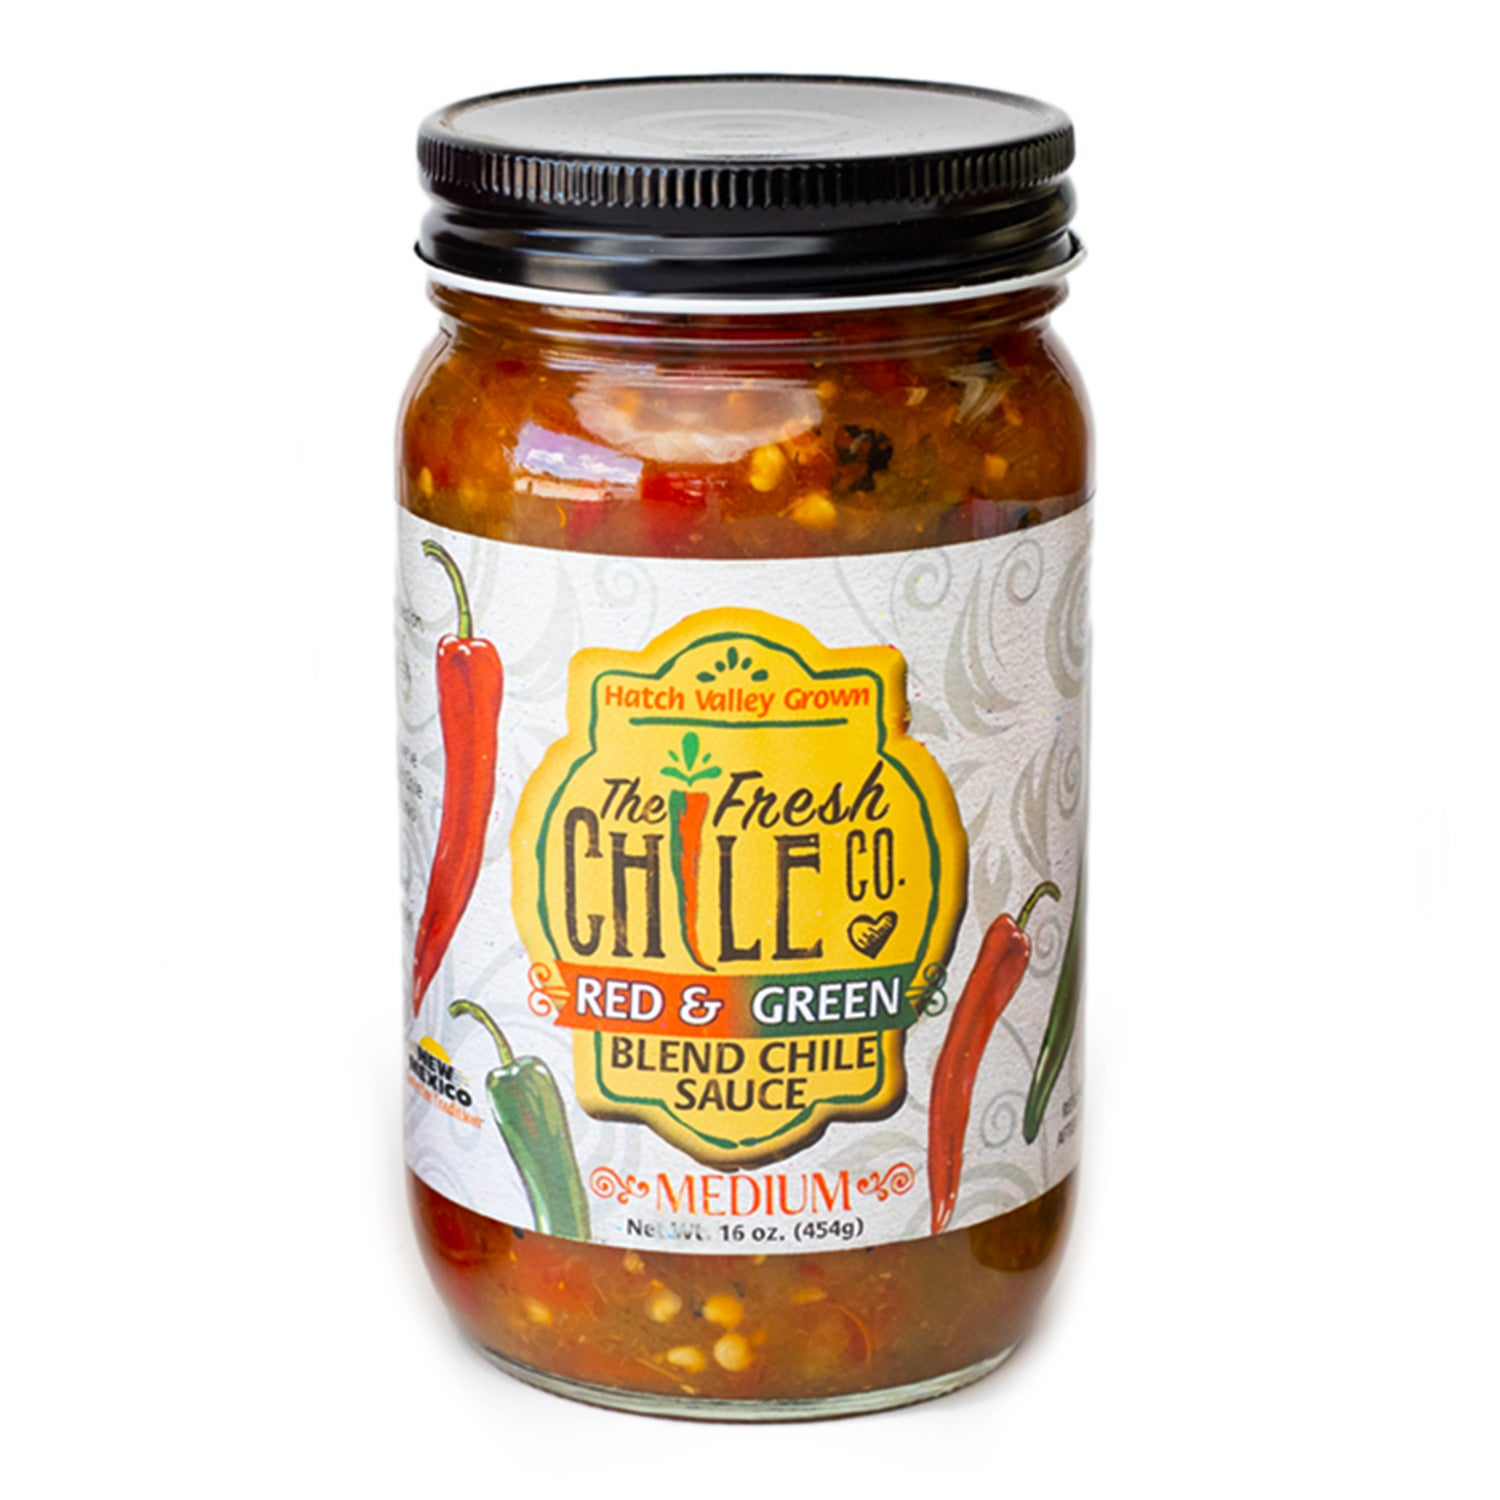 The Fresh Chile Company Red/Green Chile Sauce - Medium